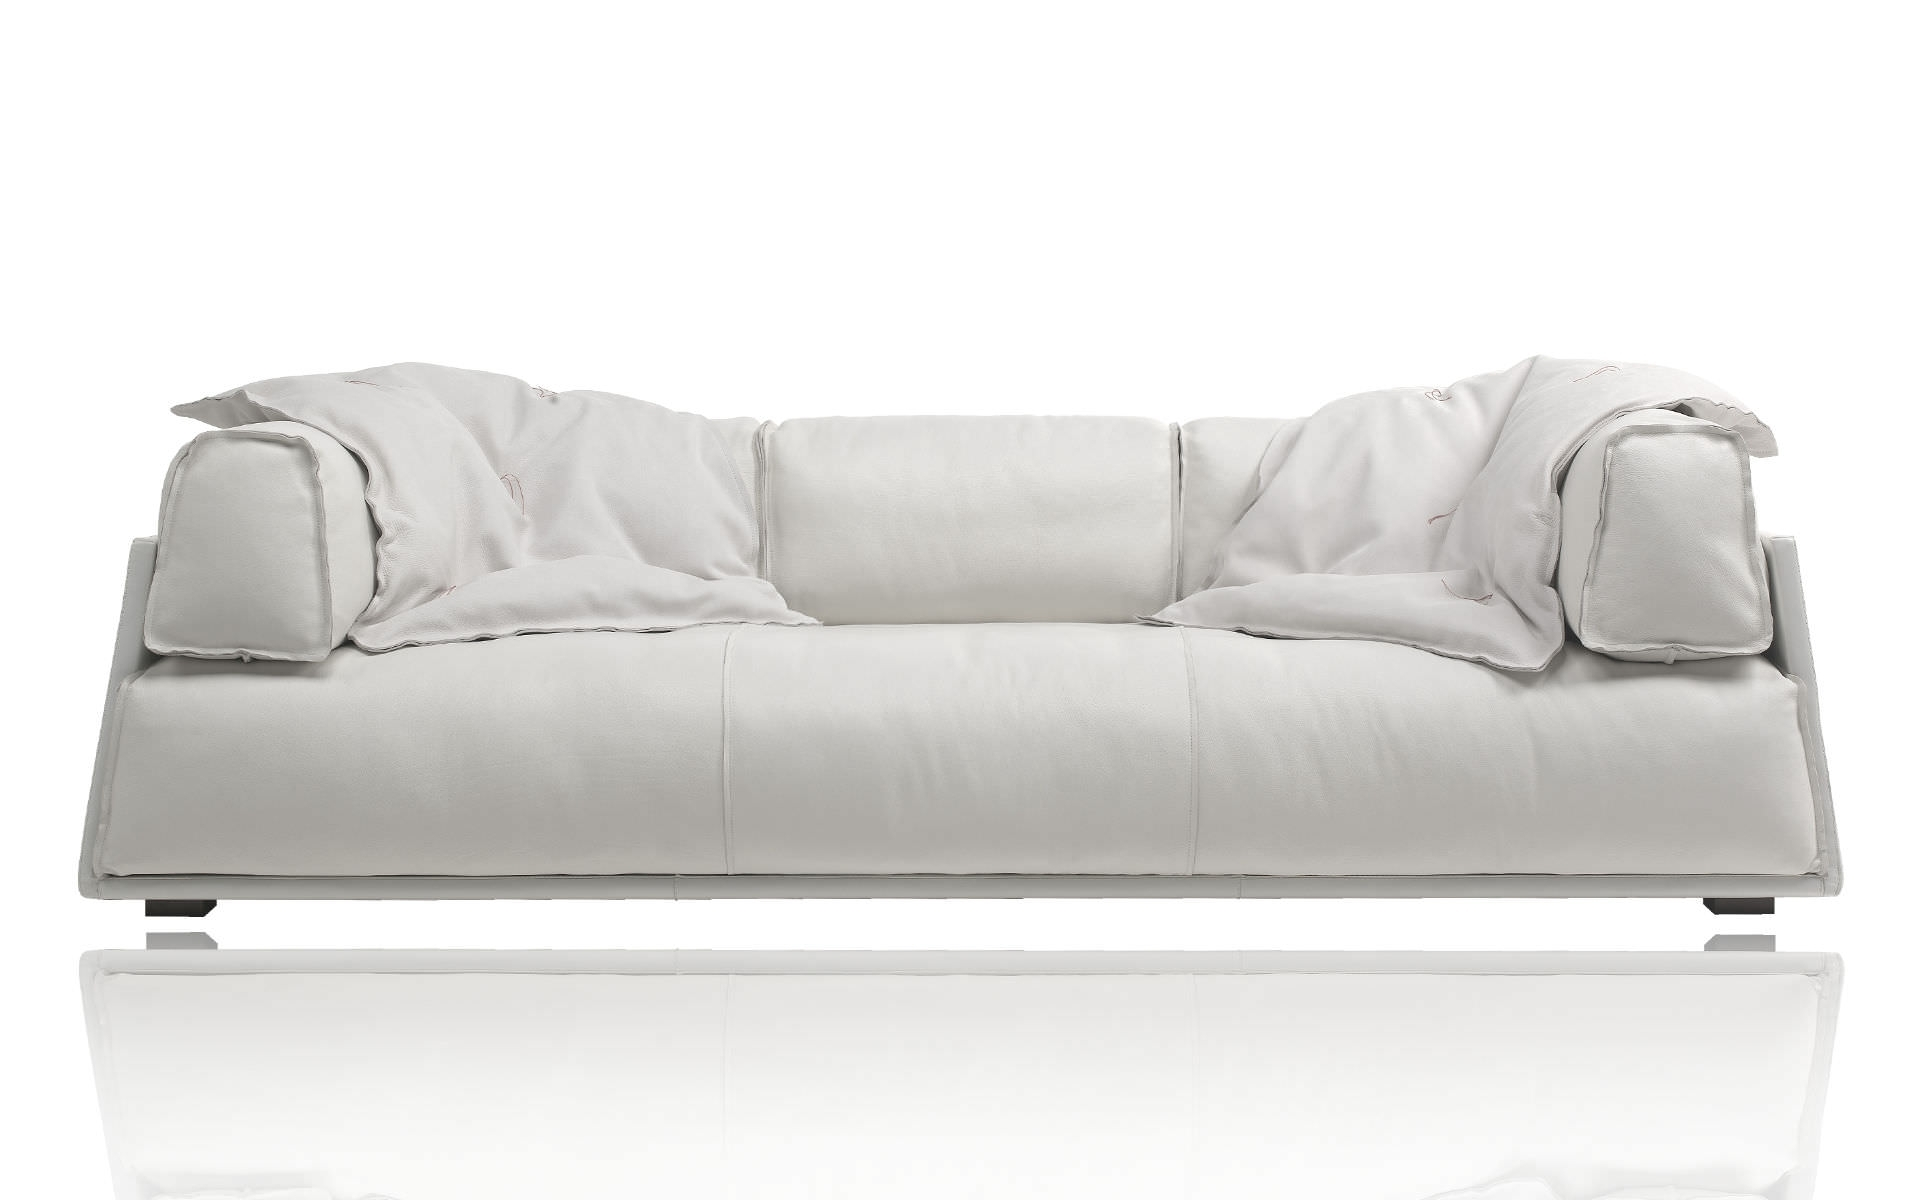 Soft Sofa – Mforum In Well Liked Soft Sofas (View 5 of 15)